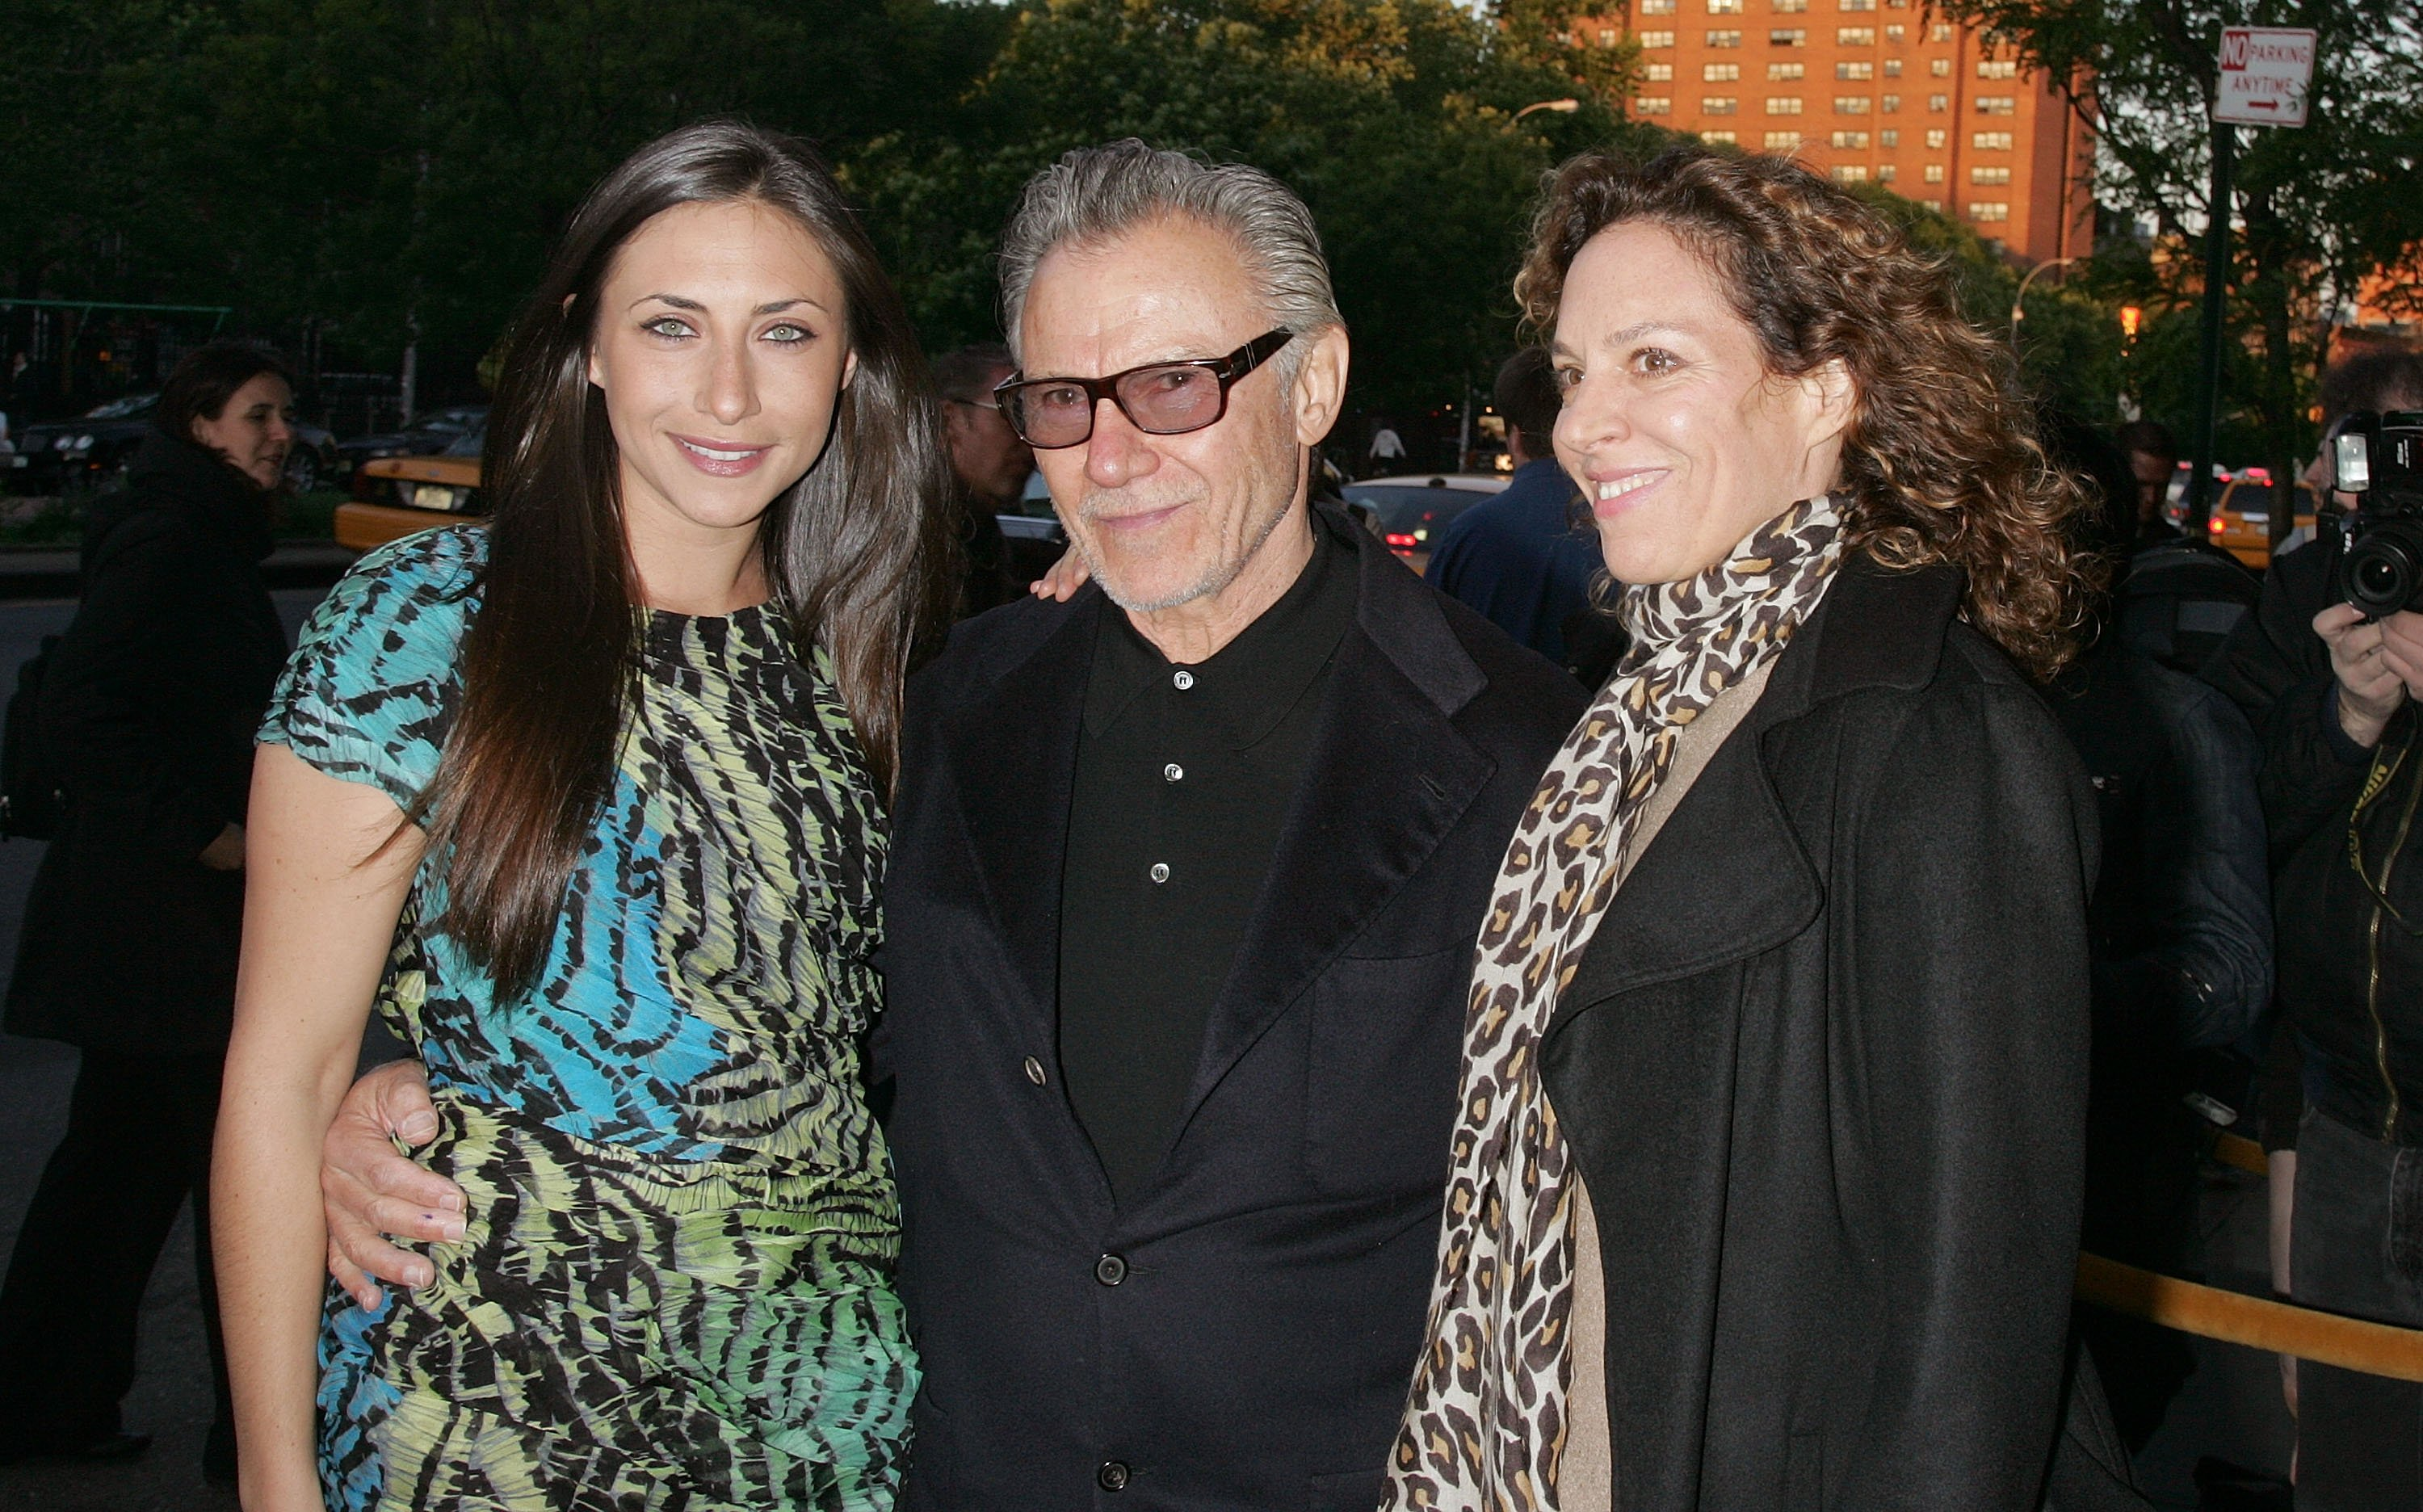 Harvey Keitel with daughter Stella Keitel (L) and Daphna Kastner attend the Holy Rollers premiere at Landmark's Sunshine Cinema on May 10, 2010 in New York City. | Photo: Getty Images